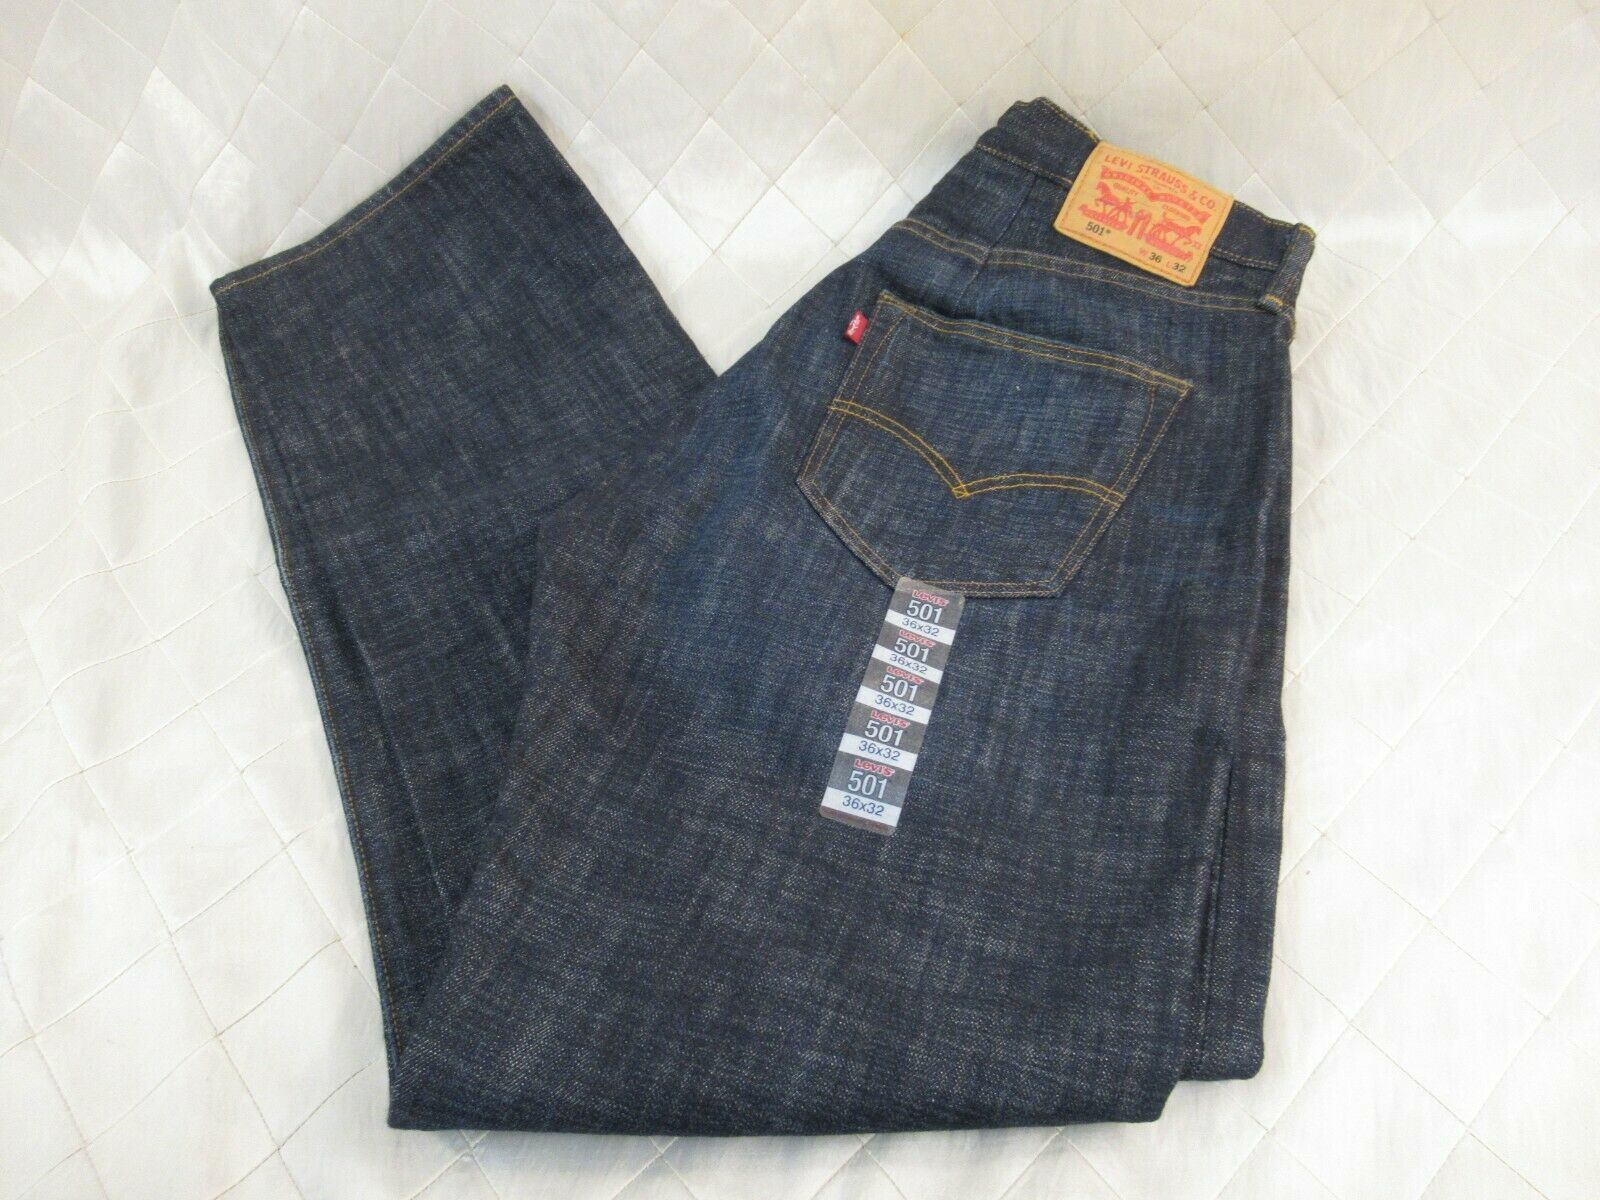 NWT Altered Levis 501 Mens Button Fly 36 x 32 Whiskered Blue Denim - $43.35